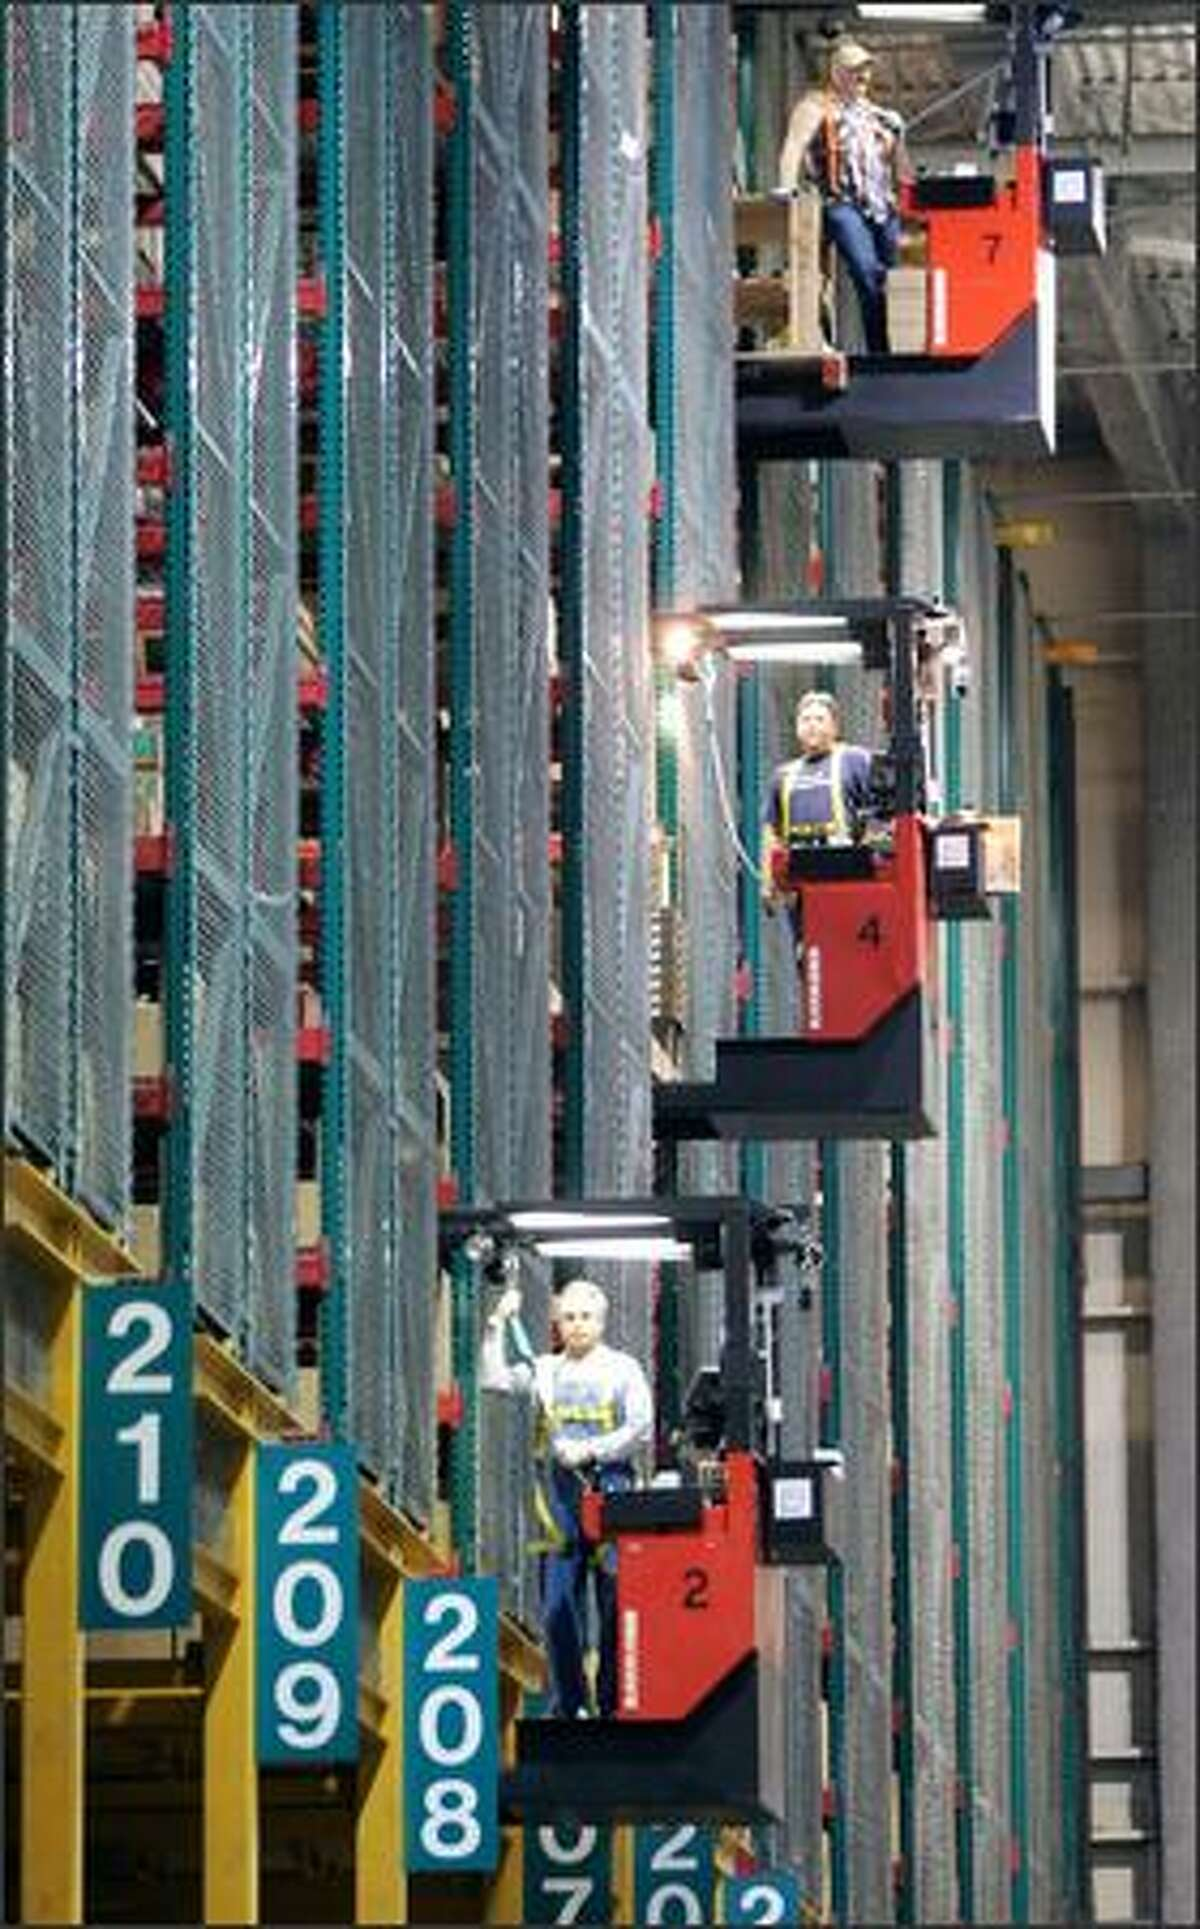 Boeing workers use these lifts to travel up to 60 feet to the top of huge storage bays at the Boeing Spares Distribution Center in SeaTac to fetch parts. The 24 high bay bins, each 60 feet high and 320 feet long, hold 5.9 million cubic feet of storage.